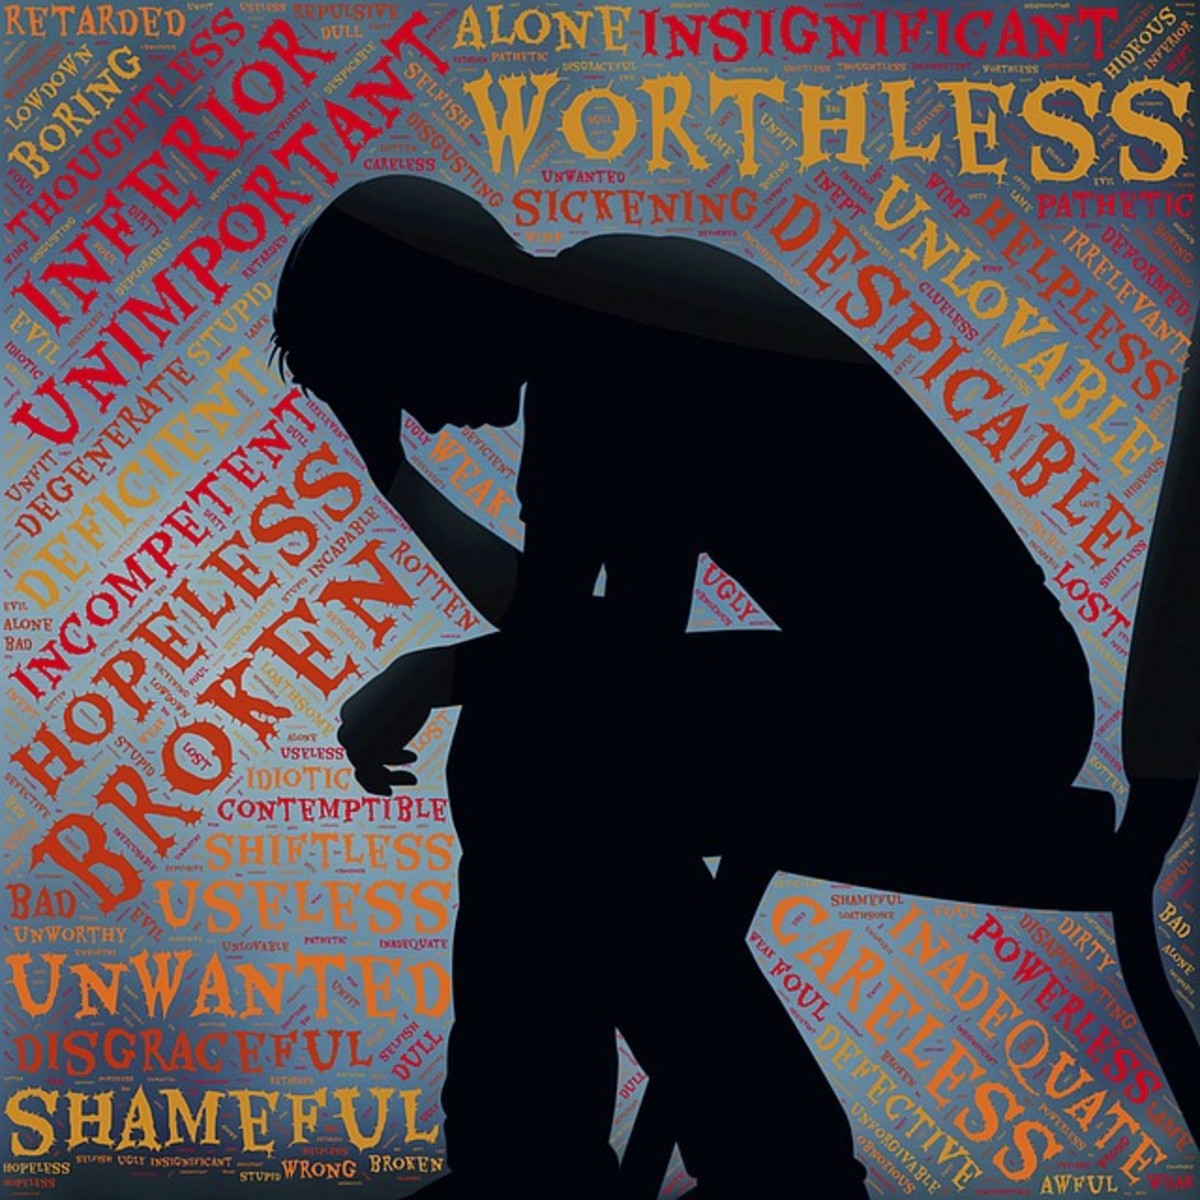 55 Bible Verses About Worry: God's Word to Overcome Worrying